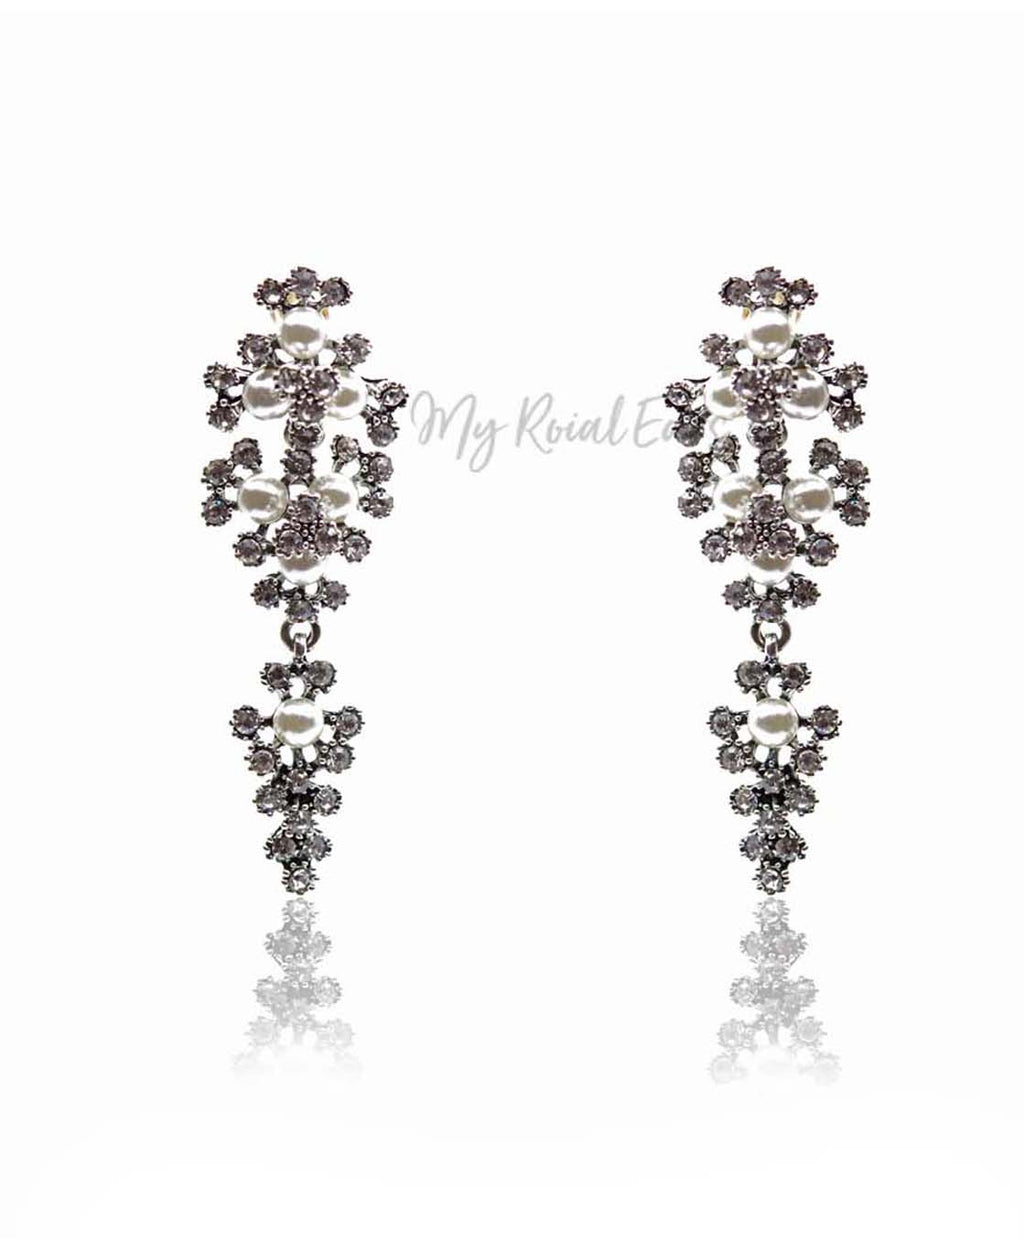 Q.MARY-delicate gold pearls inspired bridal earrings - My Roial Ears LTD